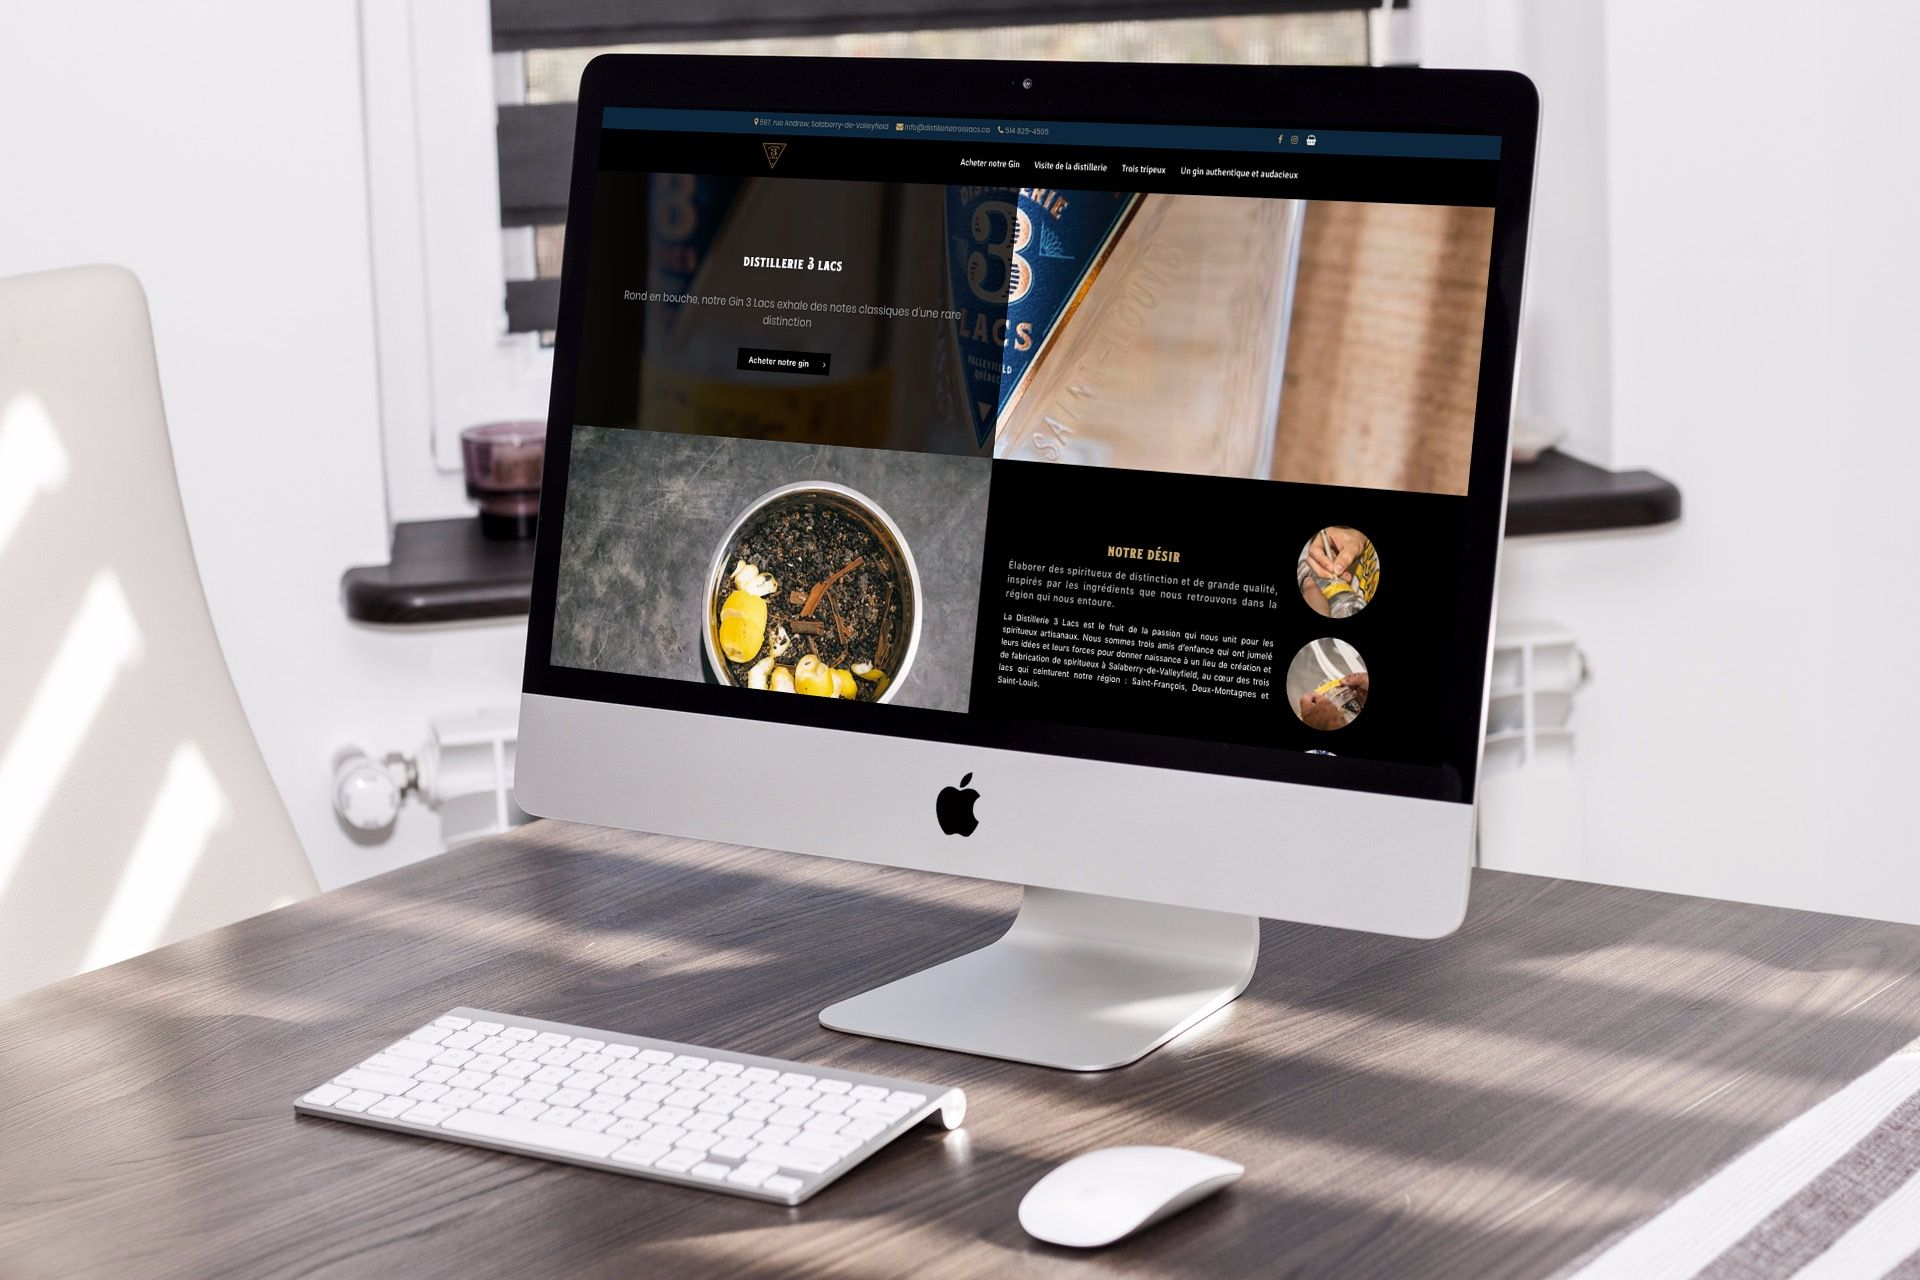 Distillerie 3 Lacs In 2020 Imac Electronic Products Electronics